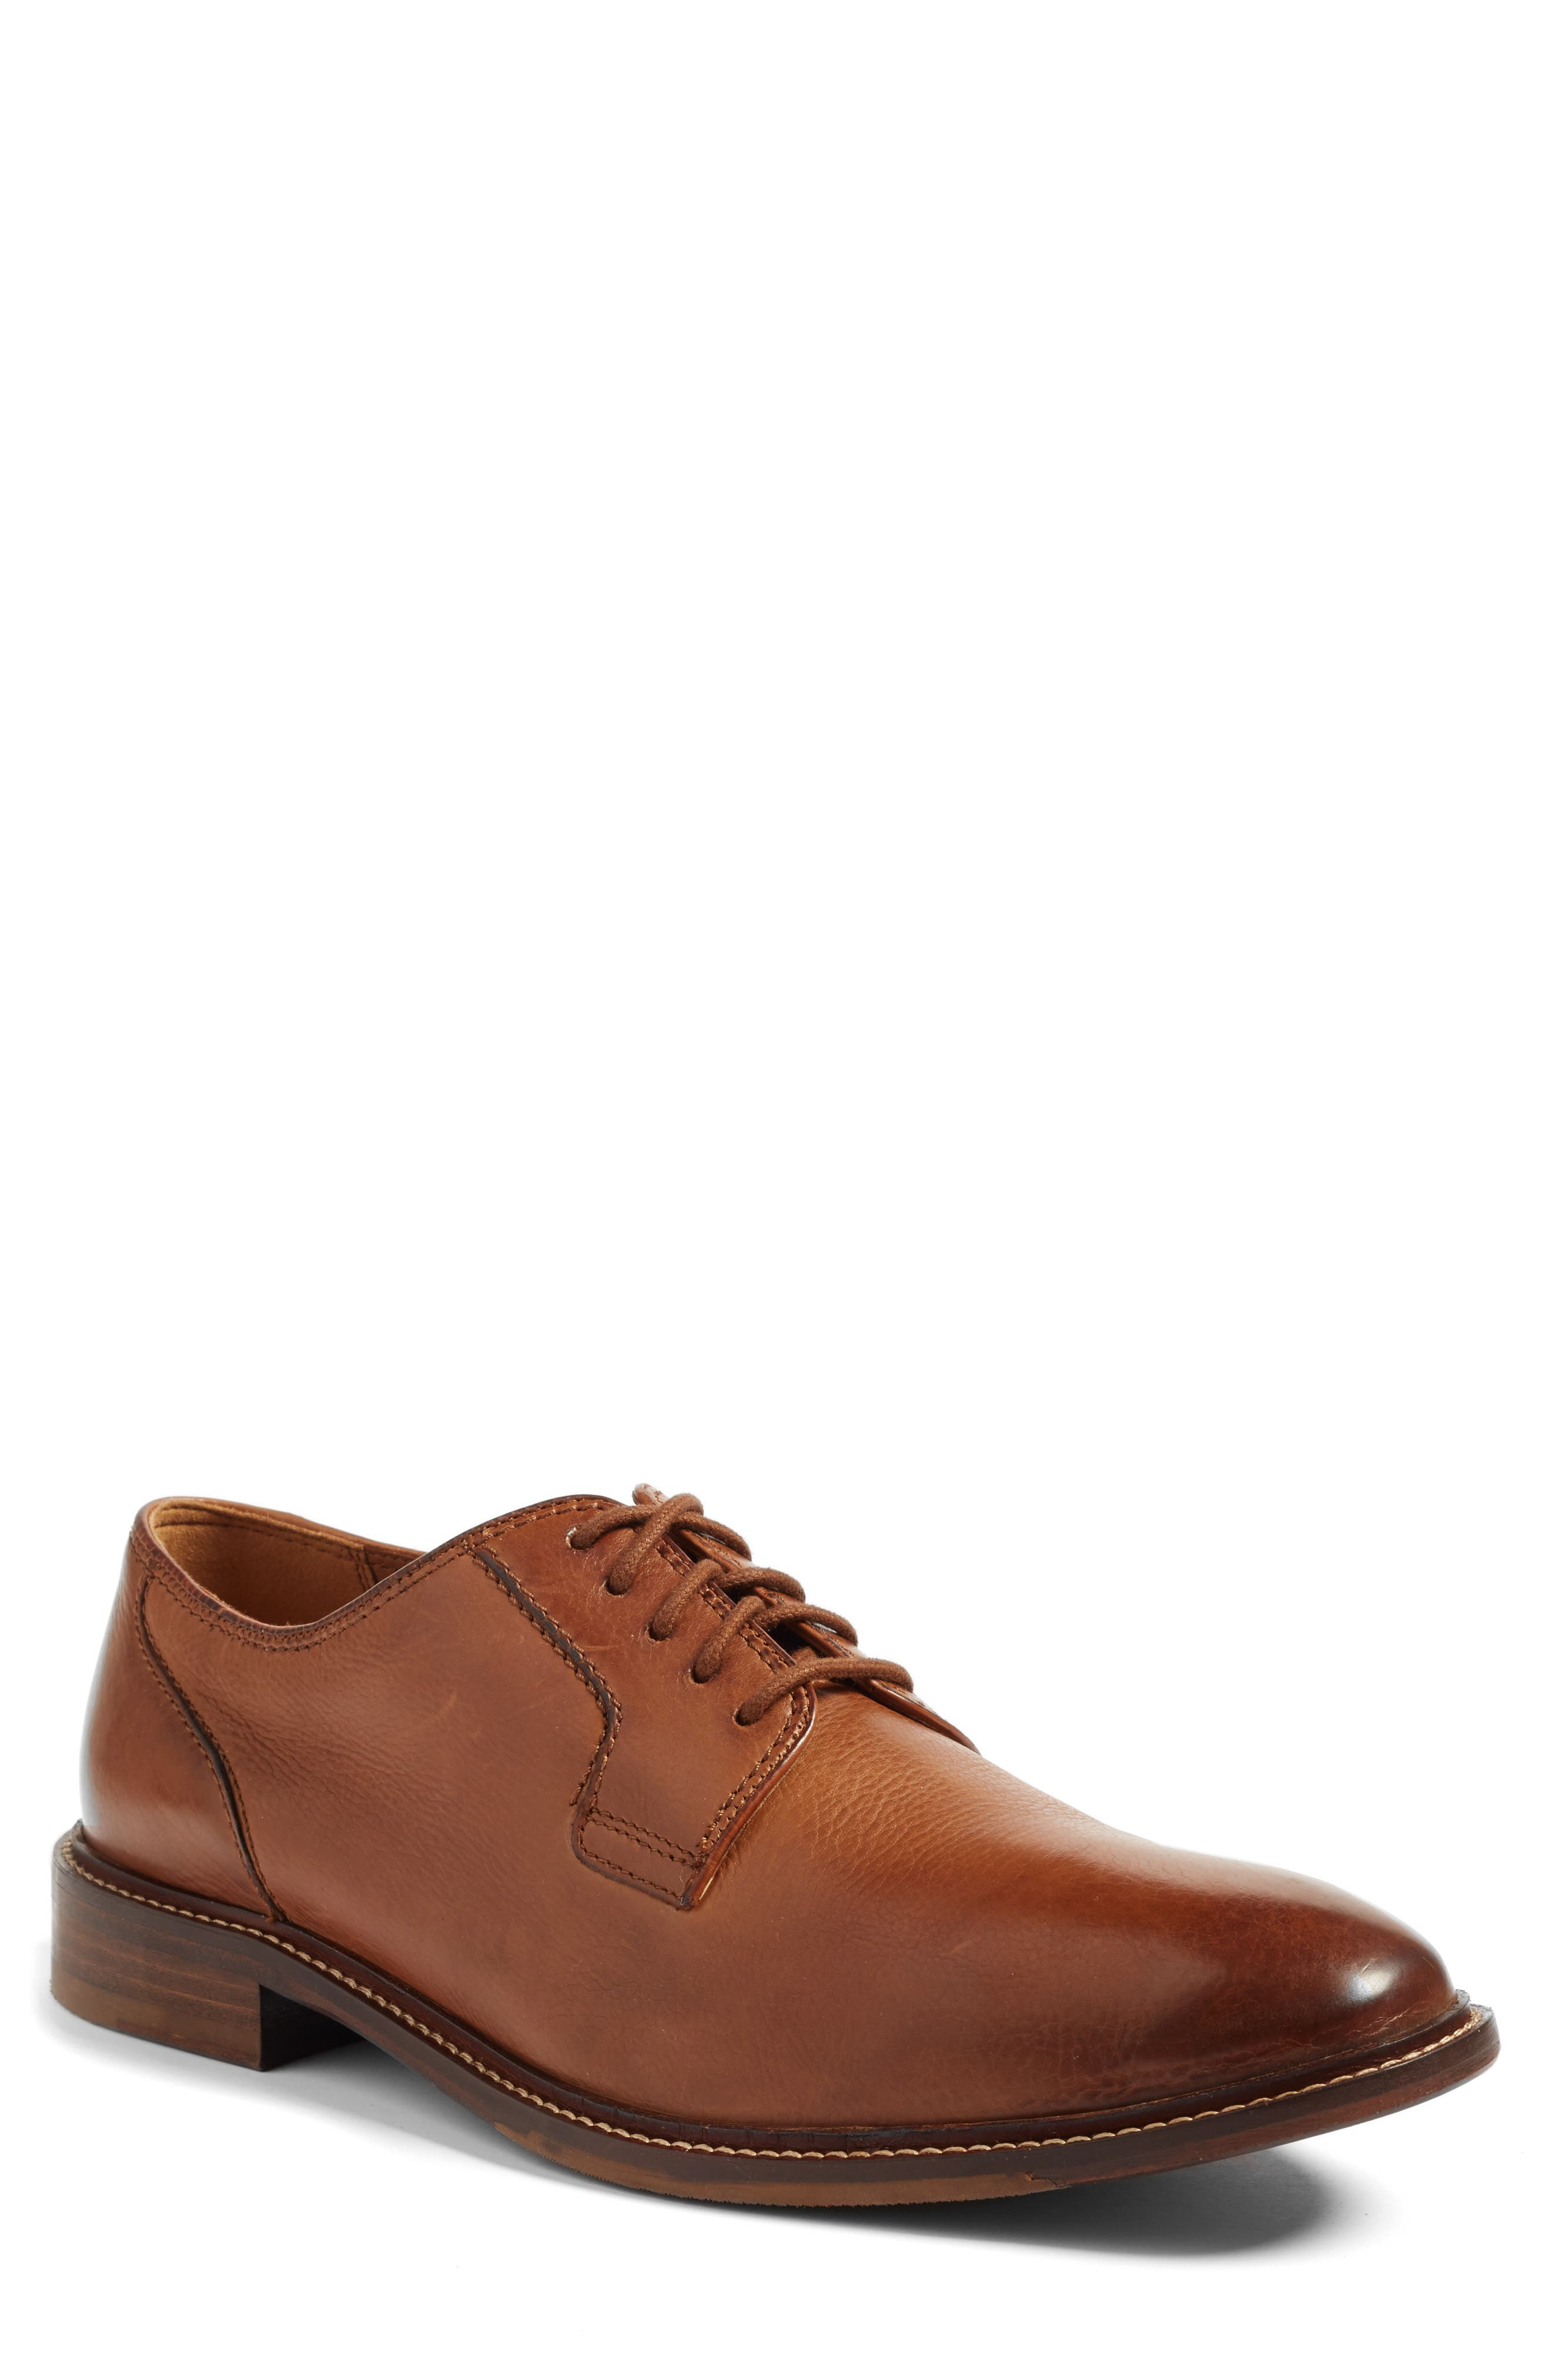 Stefano Plain Toe Derby,                             Main thumbnail 1, color,                             200